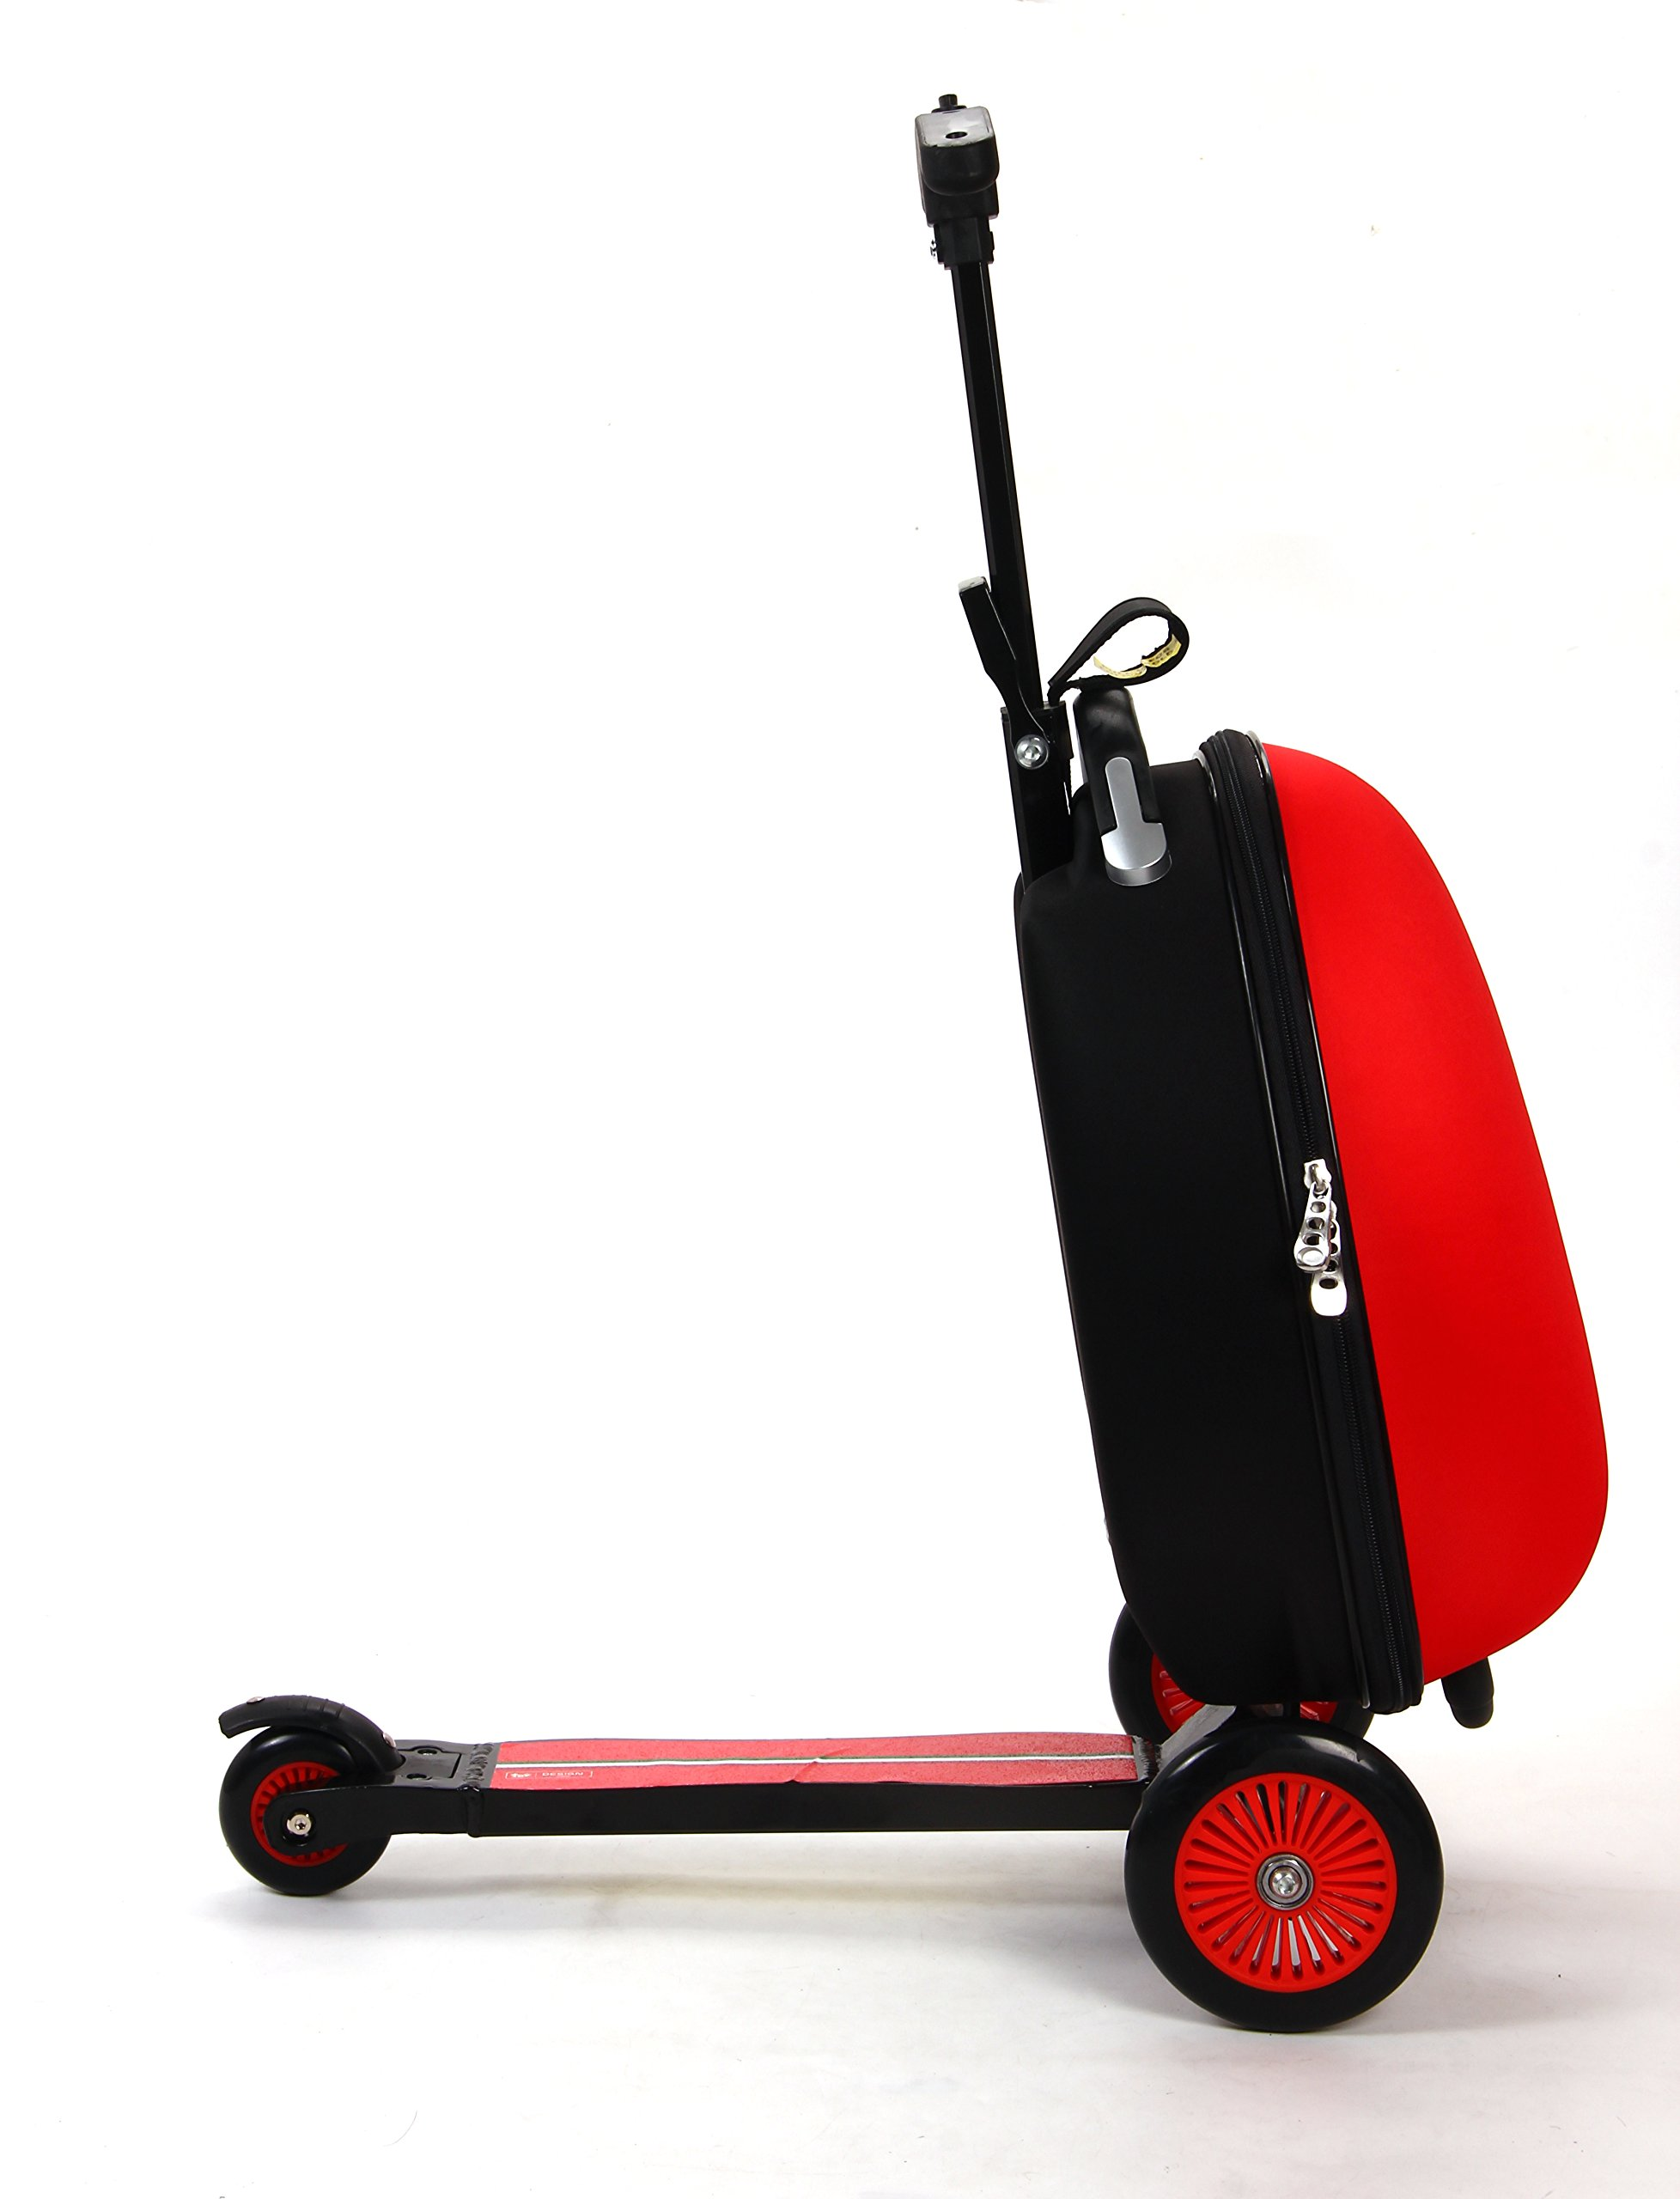 Ferrari Kids Scooter Luggage, Red by Ferrari (Image #2)